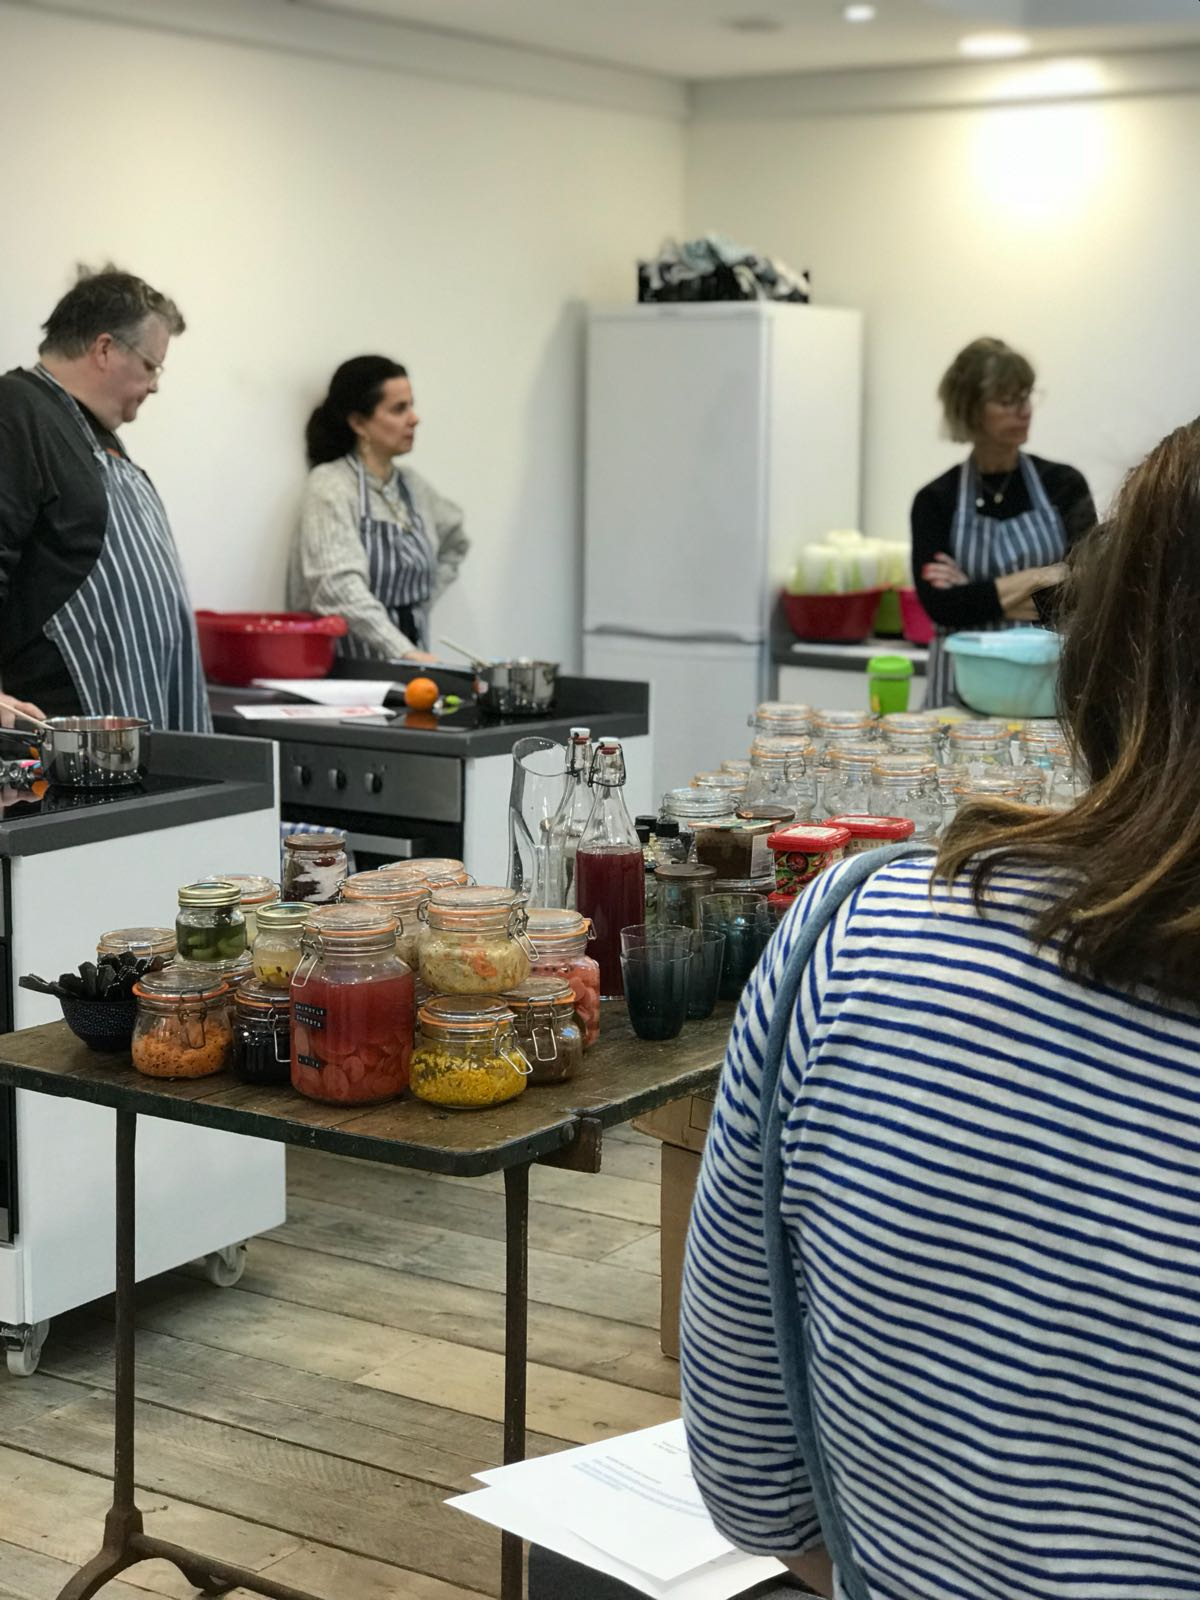 Nena Foster. Food undefined classes in London